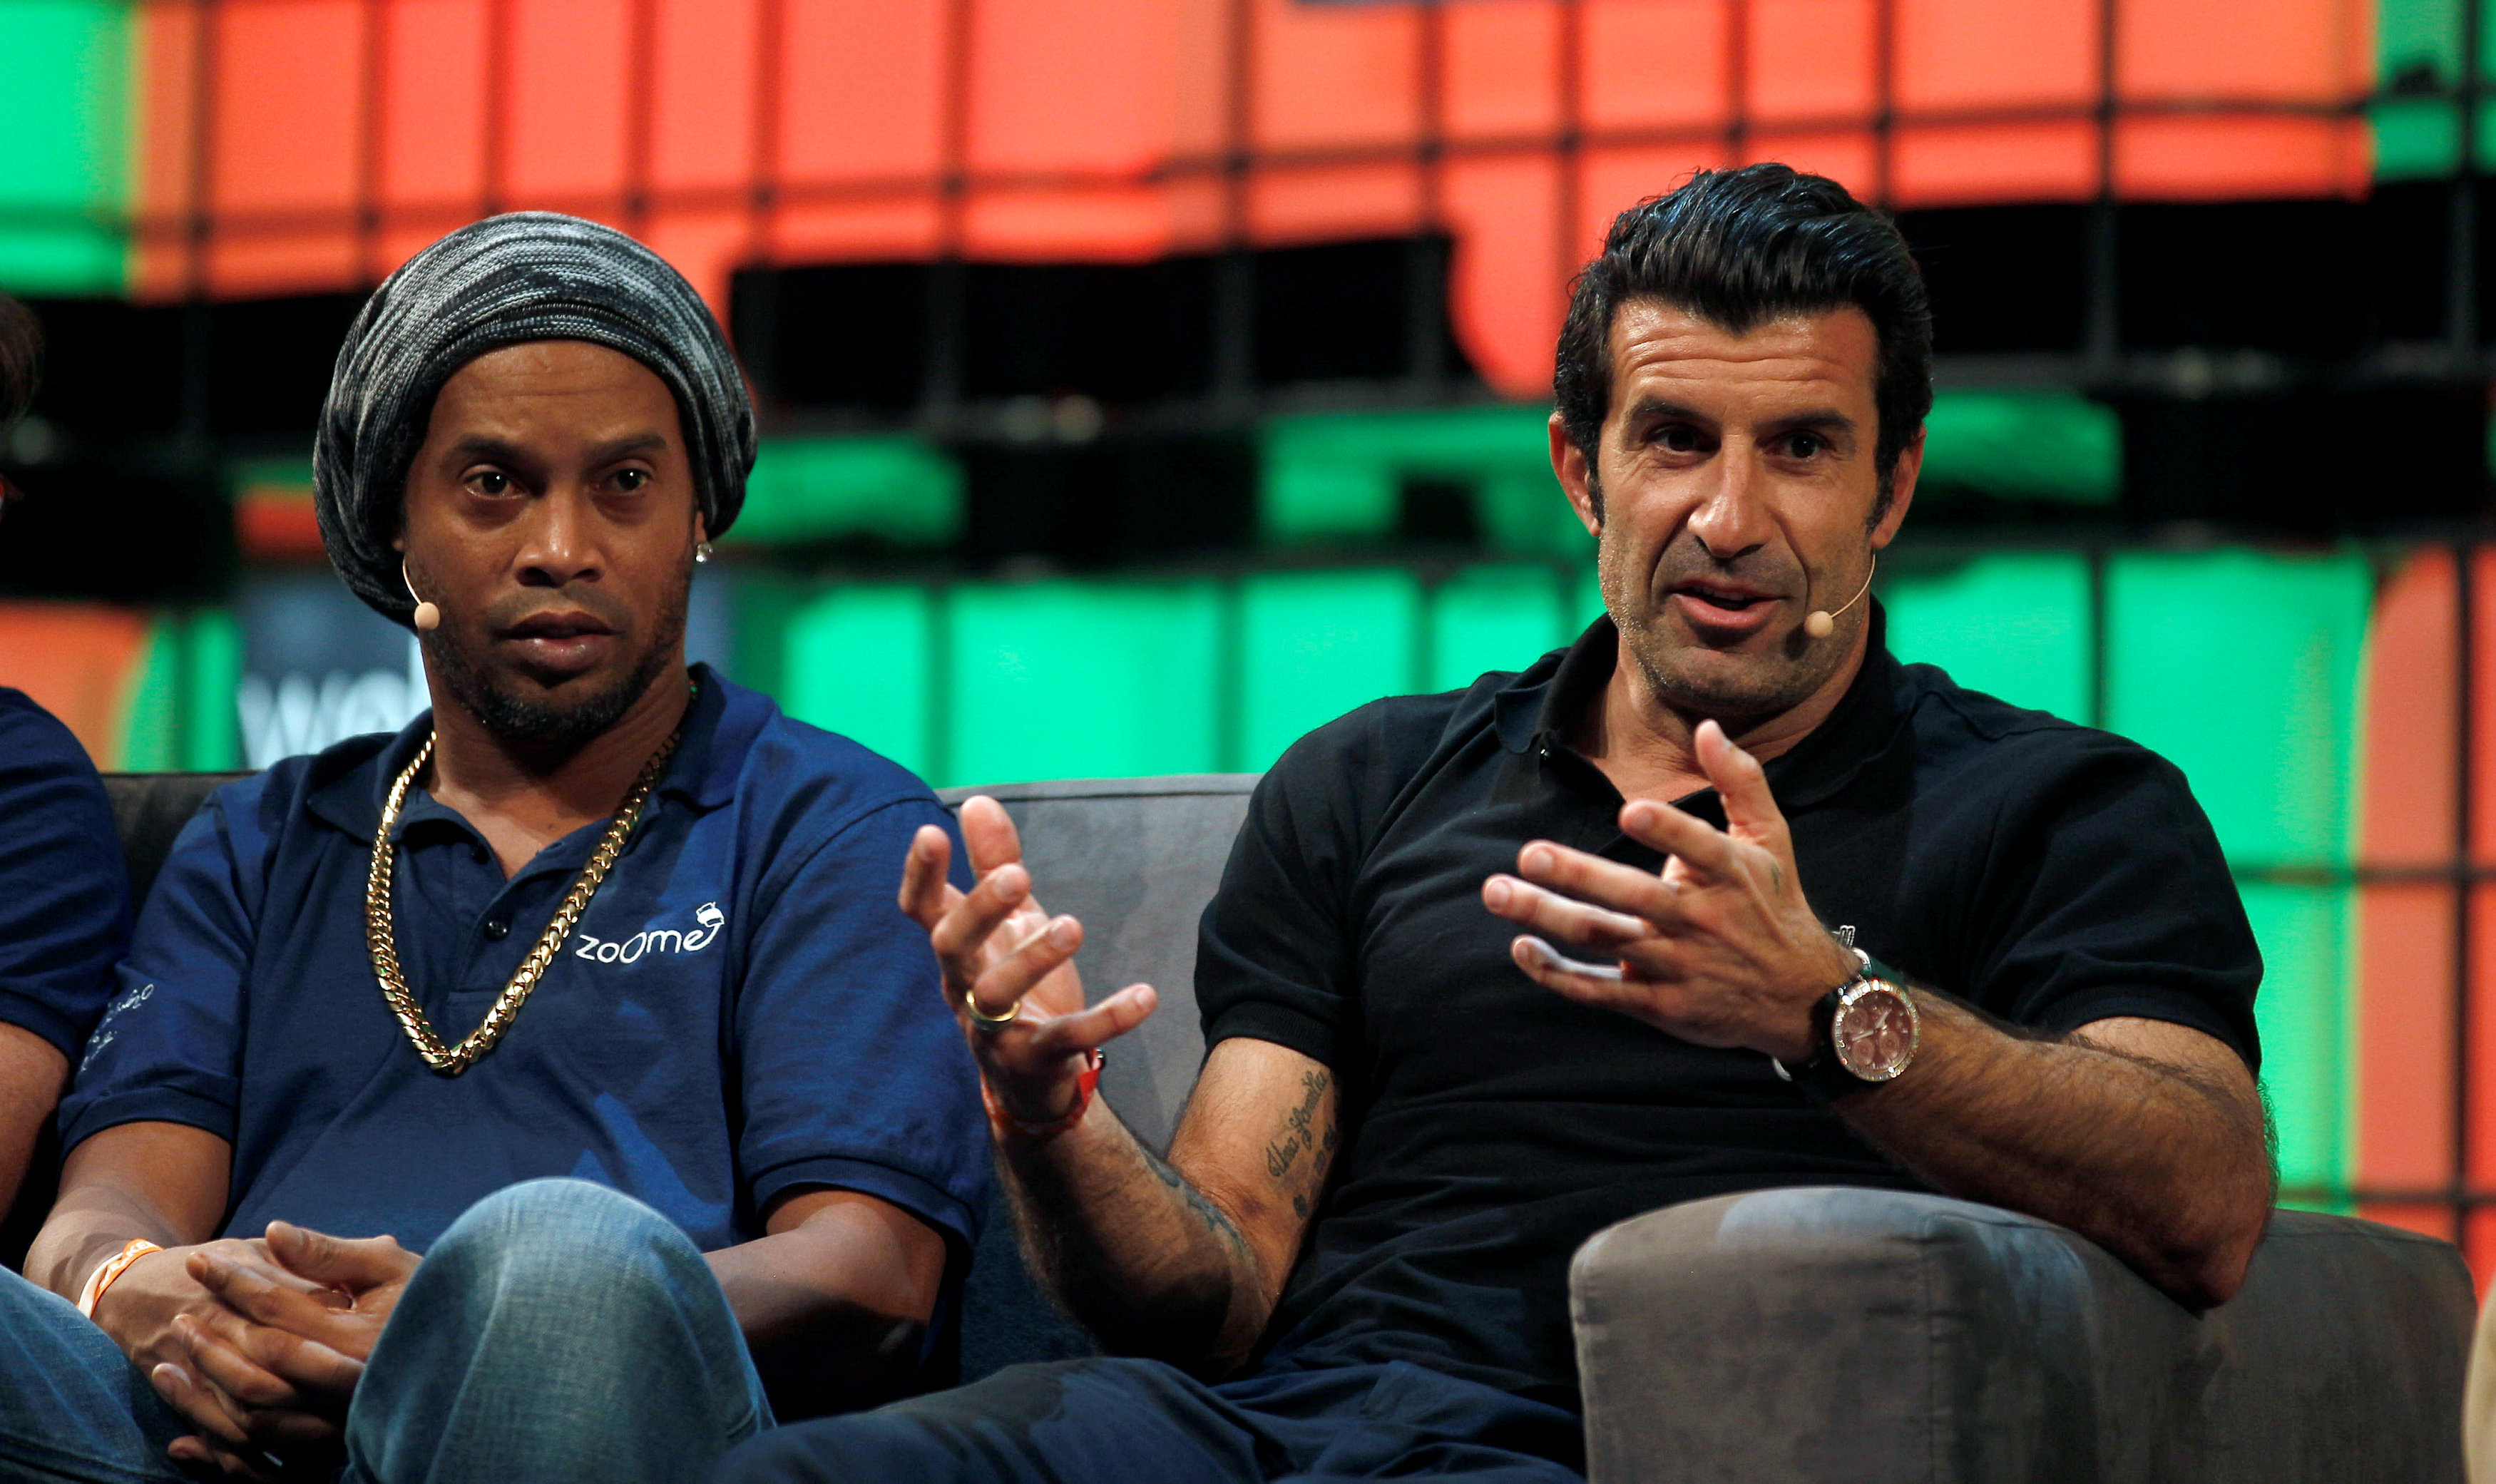 Luis Figo s Dream Football launch app to give young footballers a